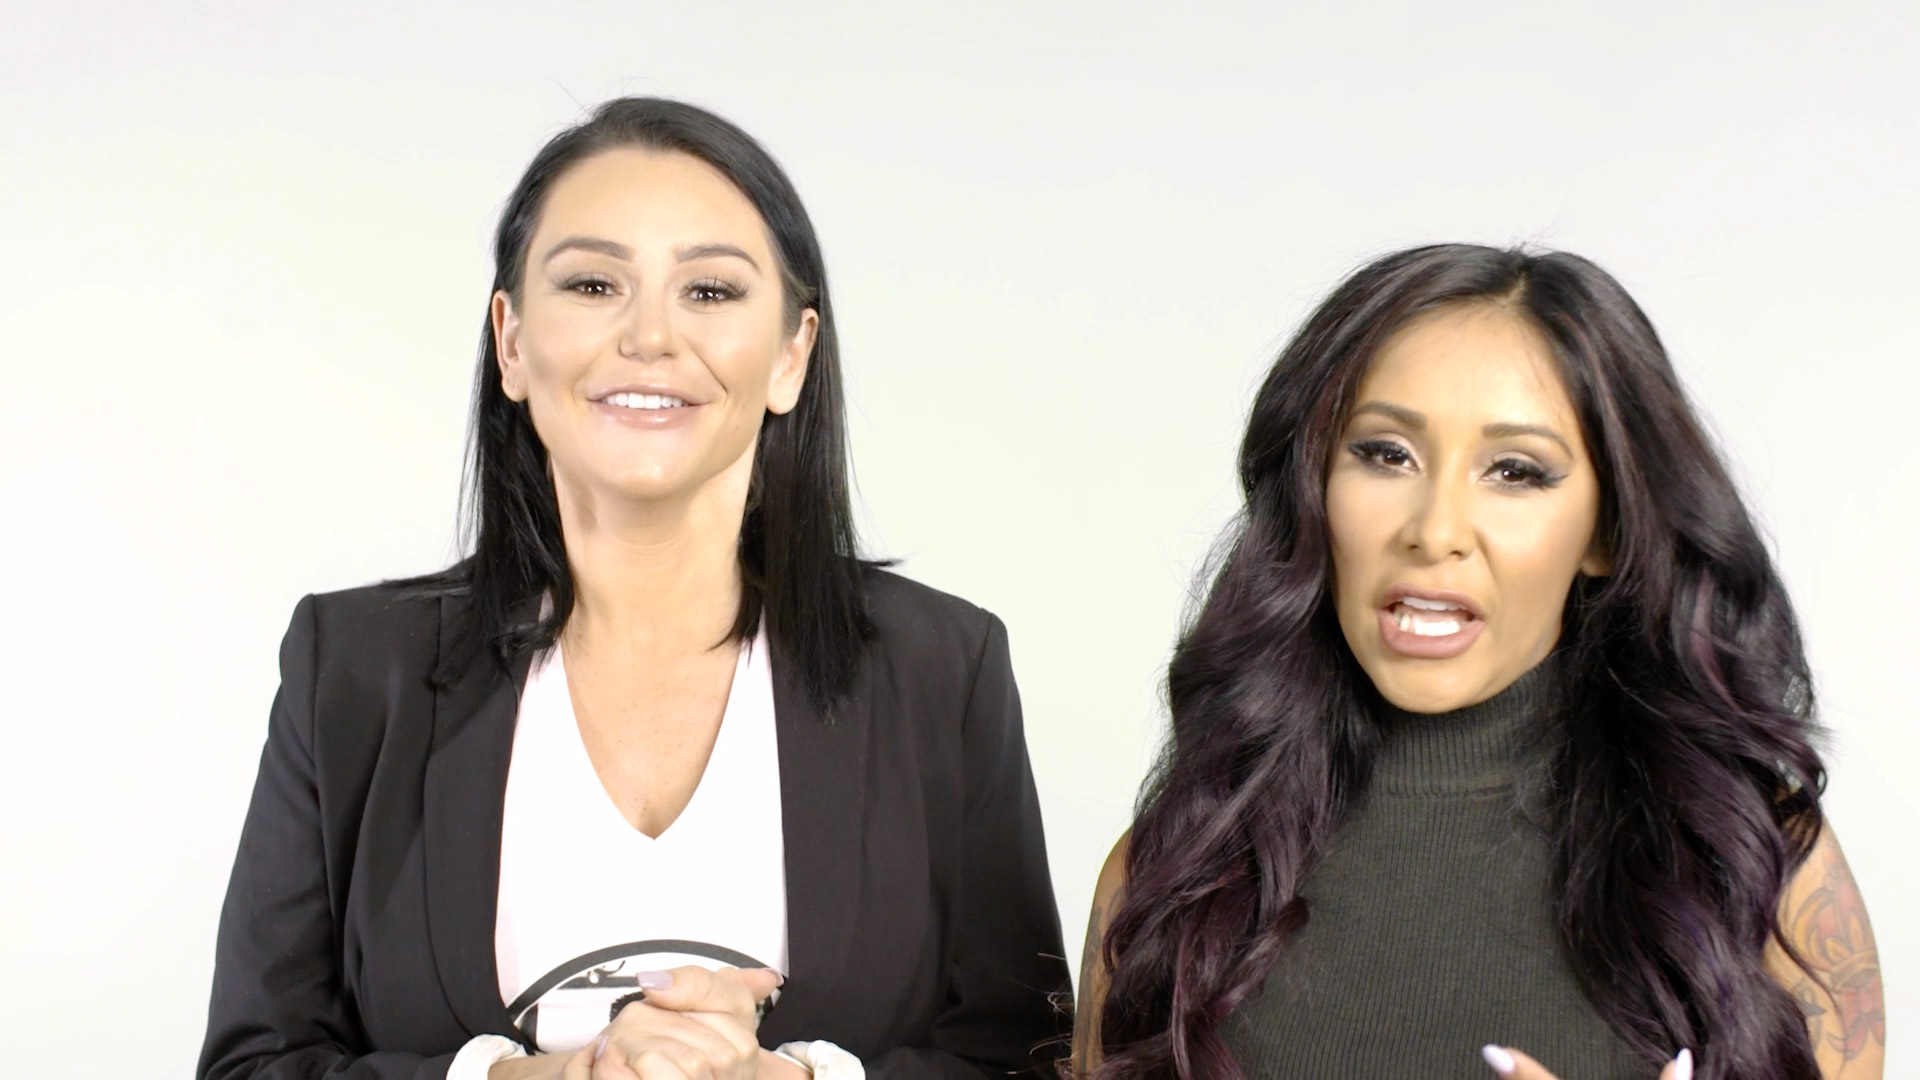 Snooki and JWoww's First Road Trip Ended in Fireworks